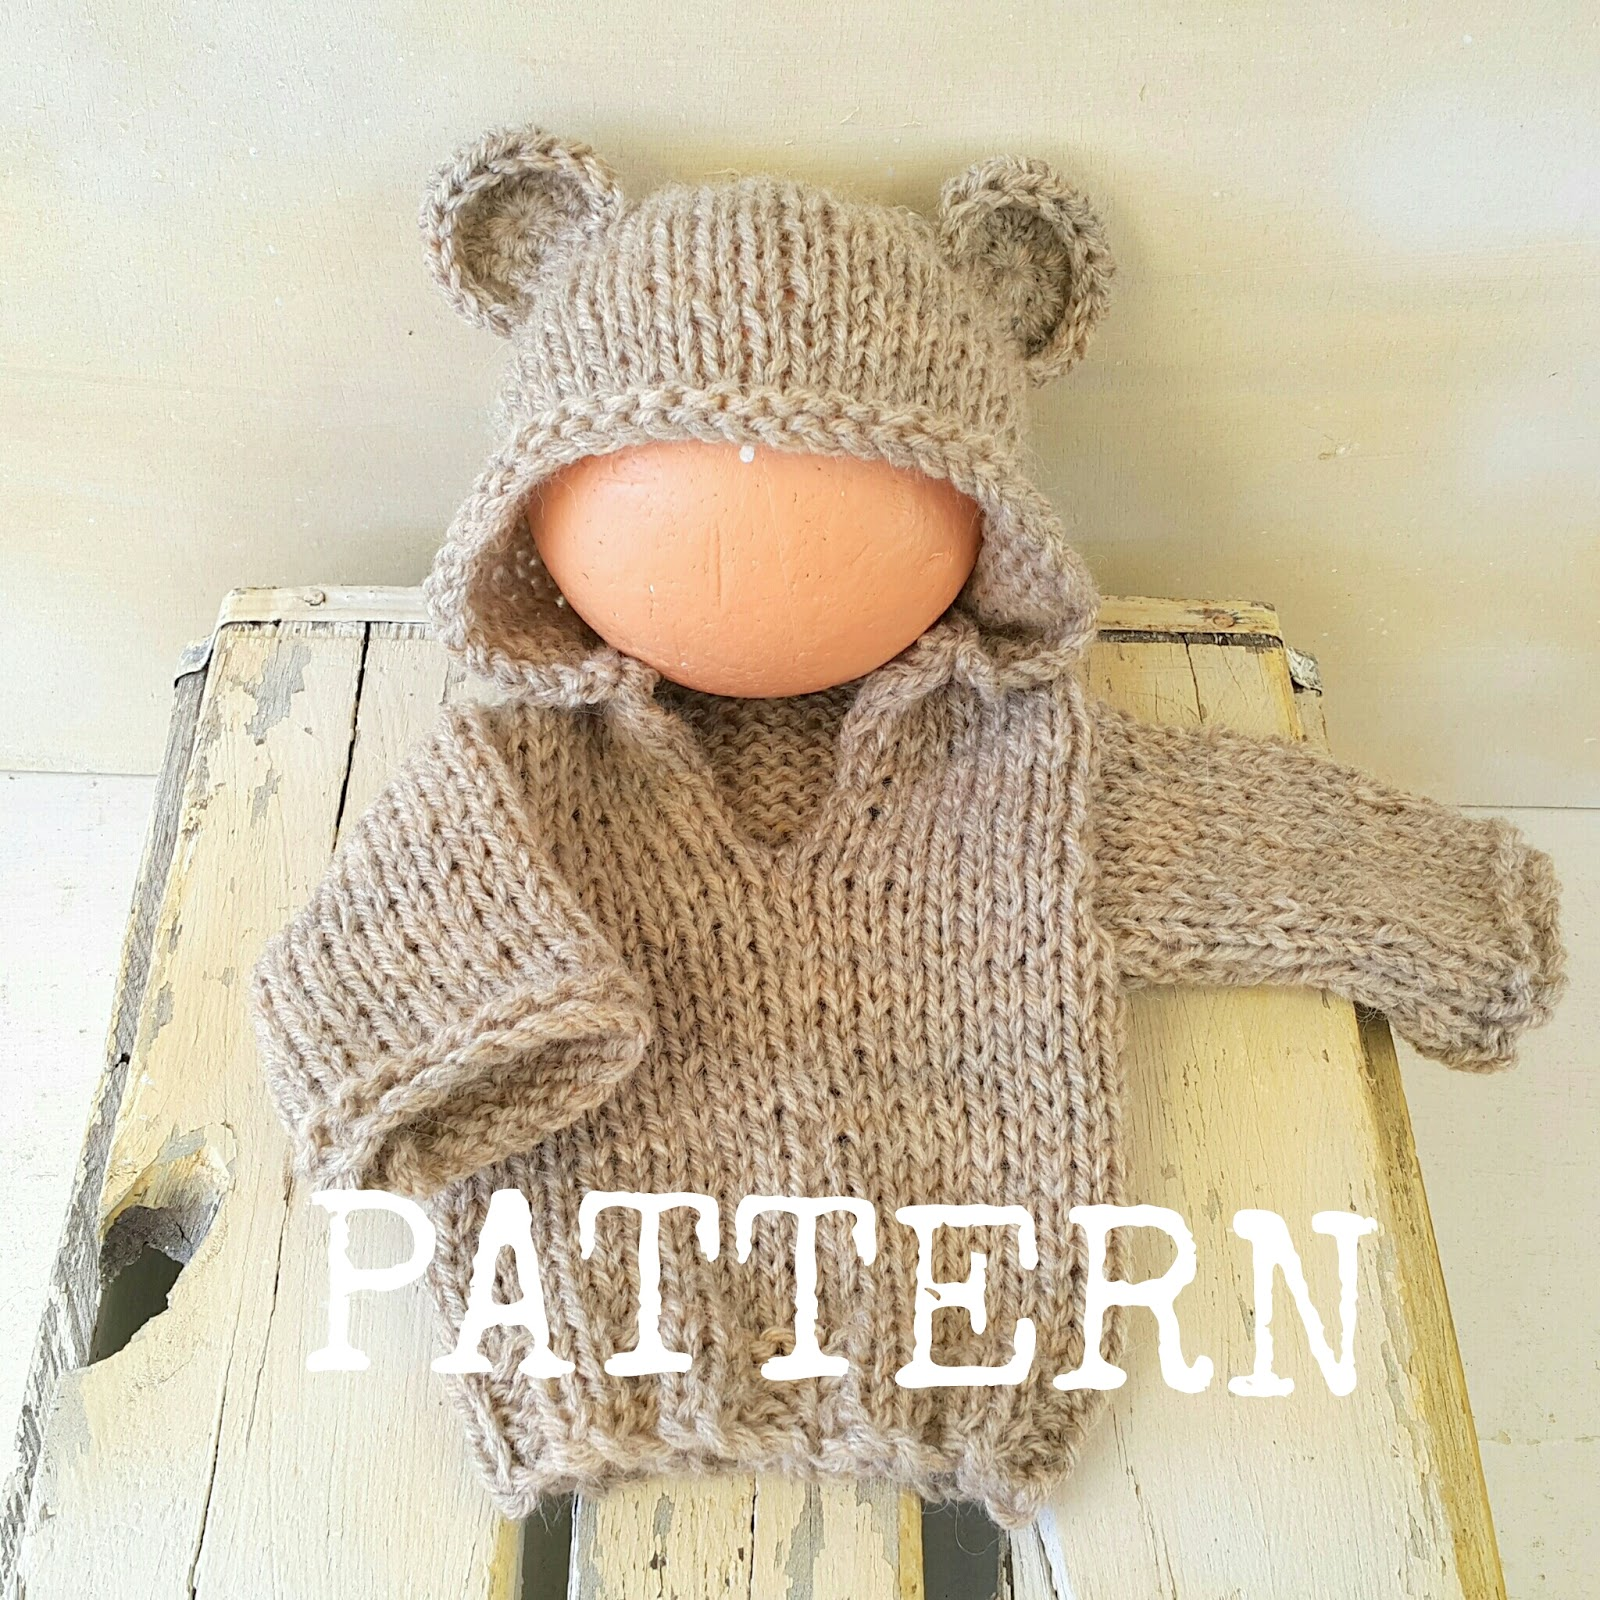 Baby Hoodie Knitting Pattern Free : Crafty Stuff Baby Knits and Photo Props: Baby Bear Hoodie Sweater Knitting Pa...